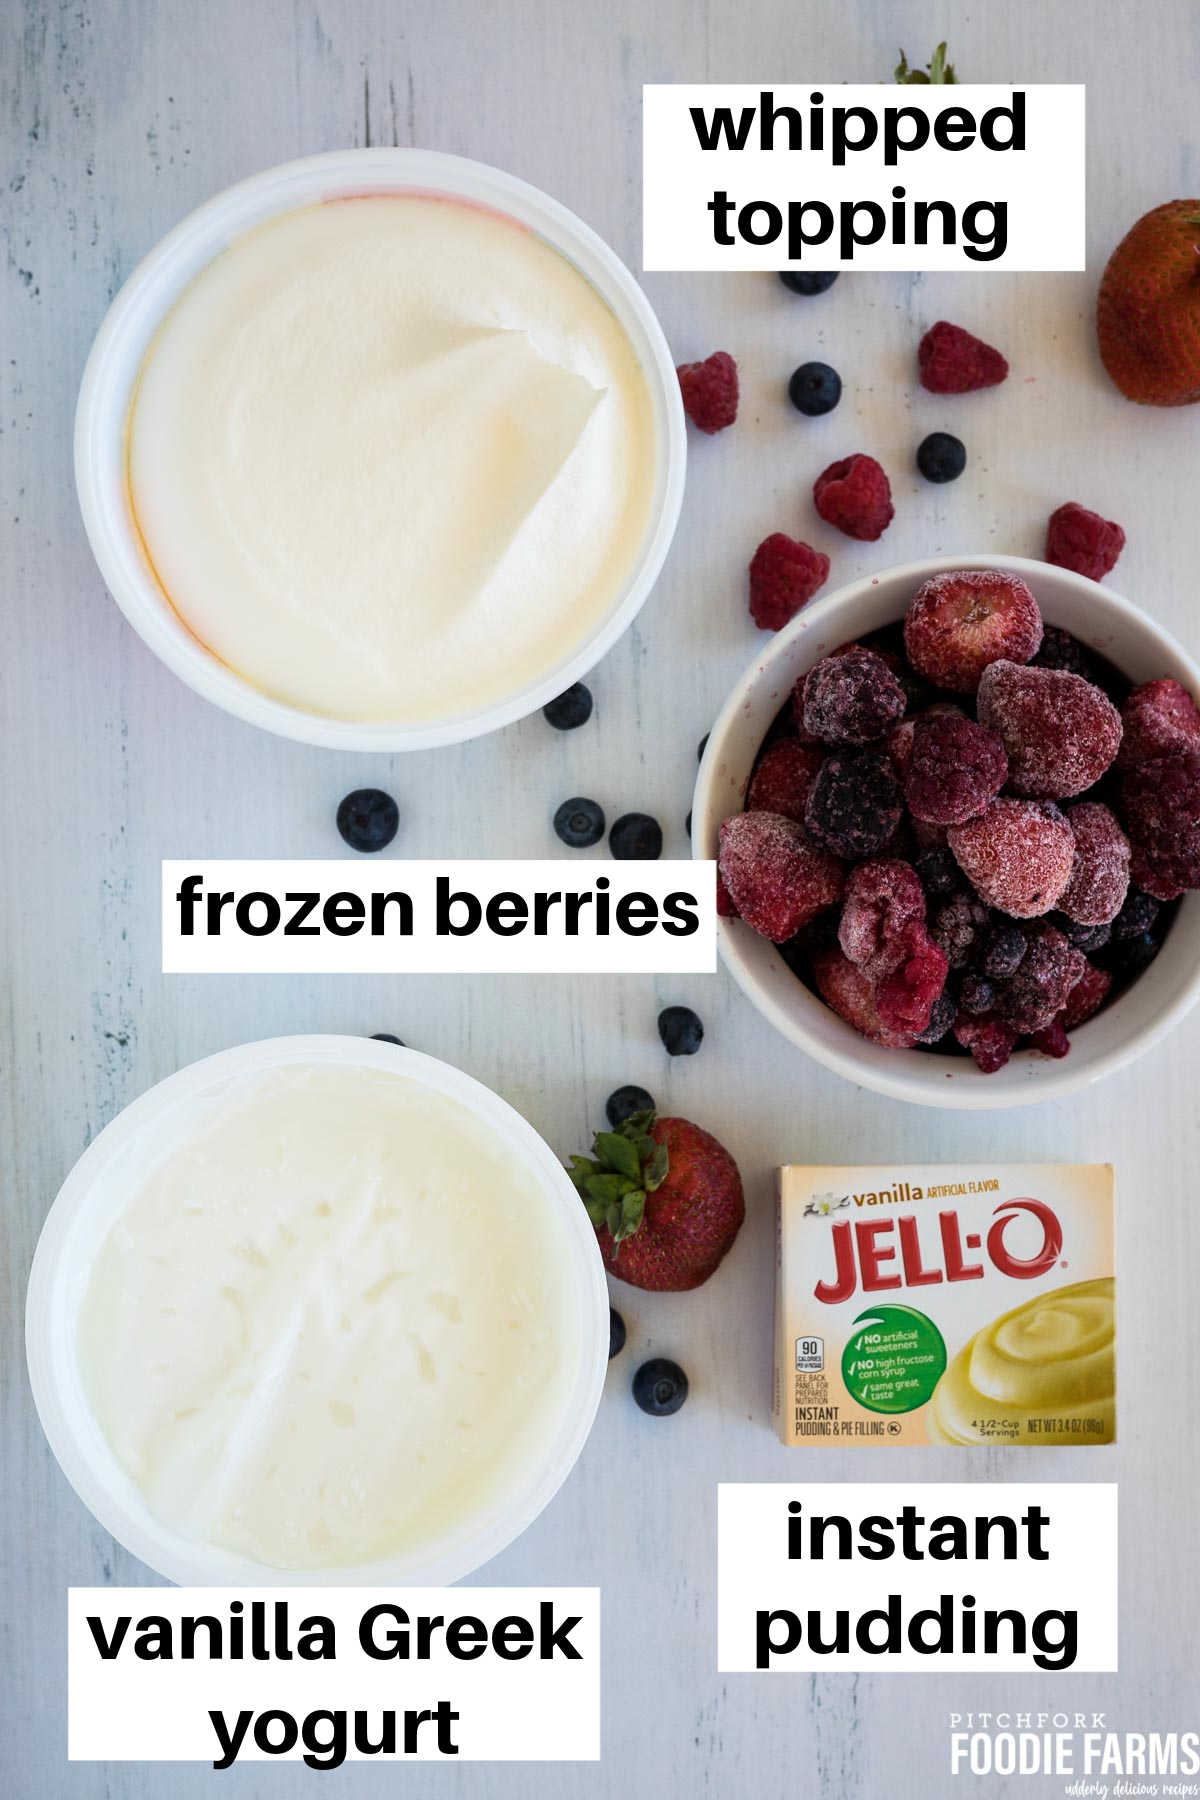 An image with ingredients needed to make cheesecake salad; frozen berries, vanilla yogurt, pudding mix, and whipped topping.